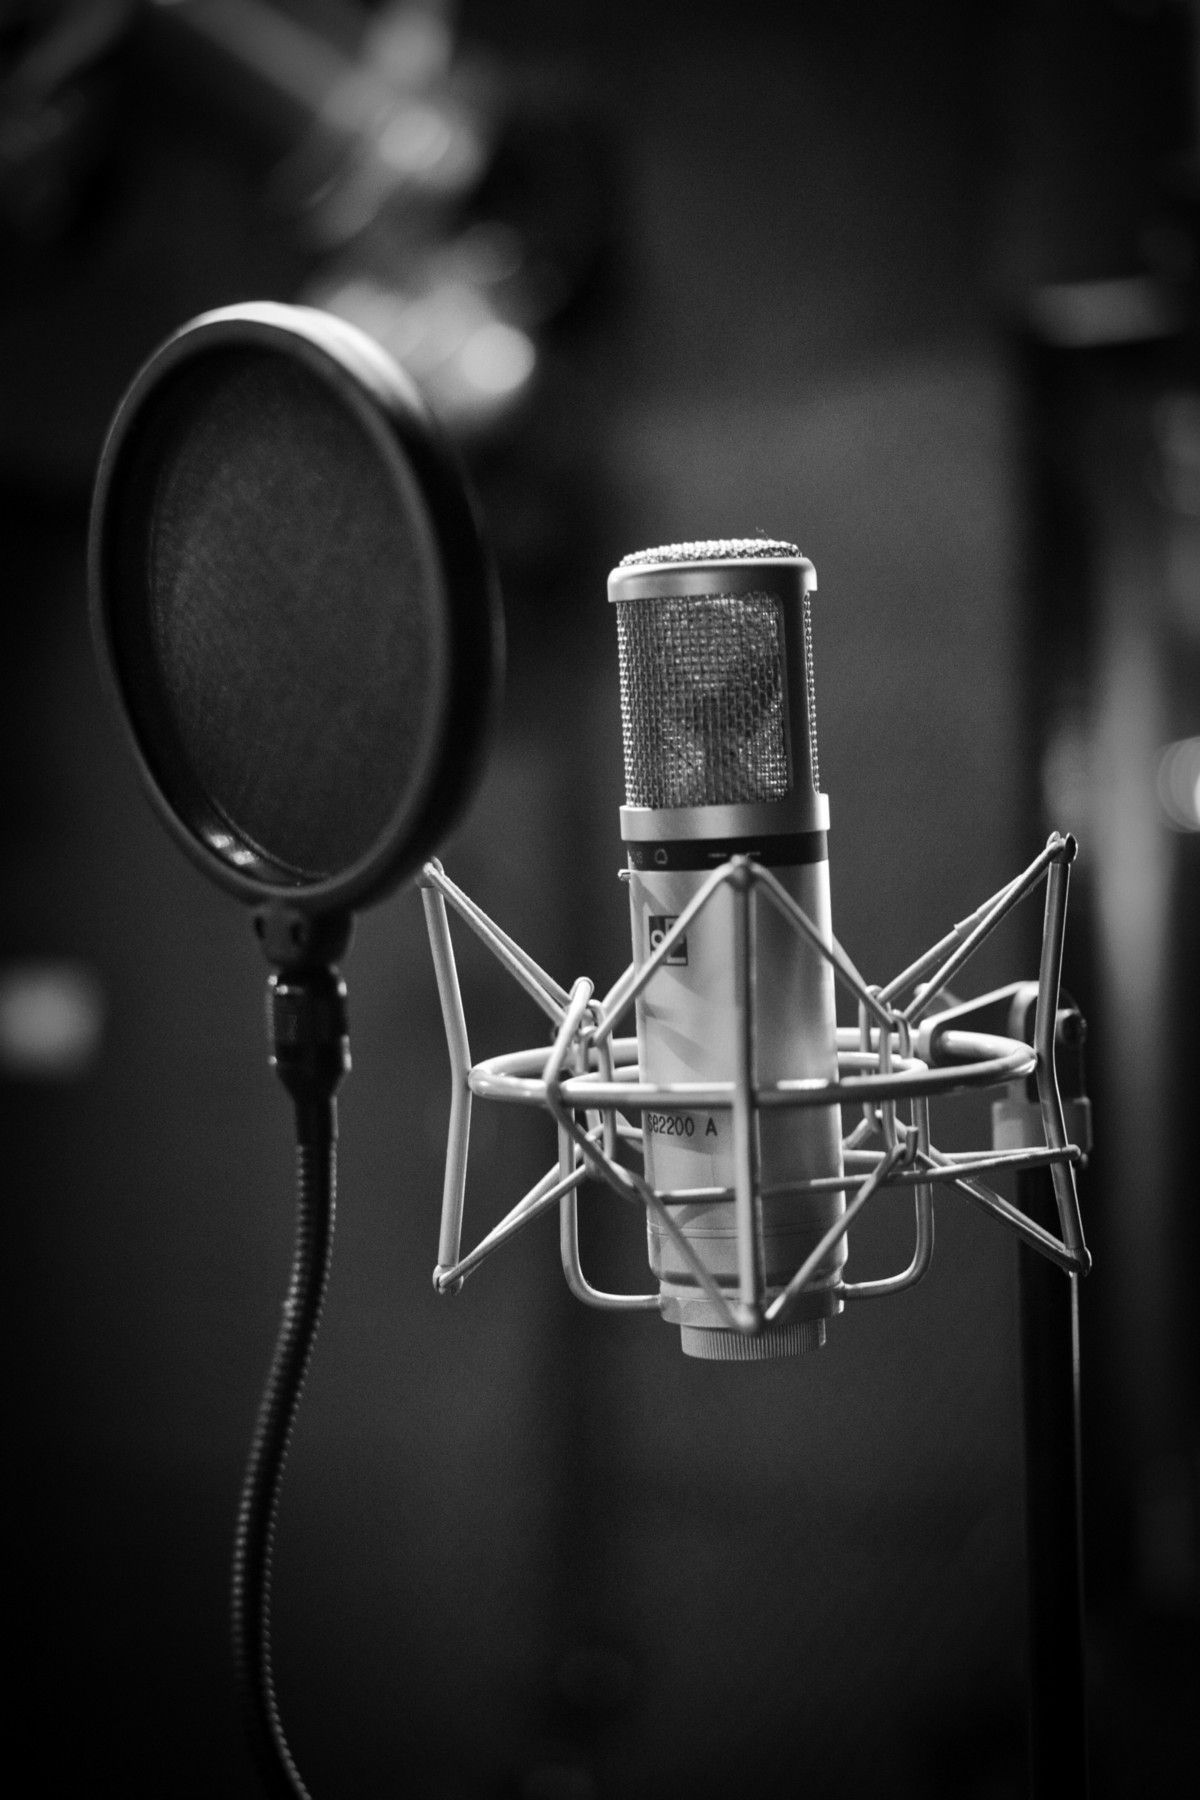 How Podcasting Has Changed My Life